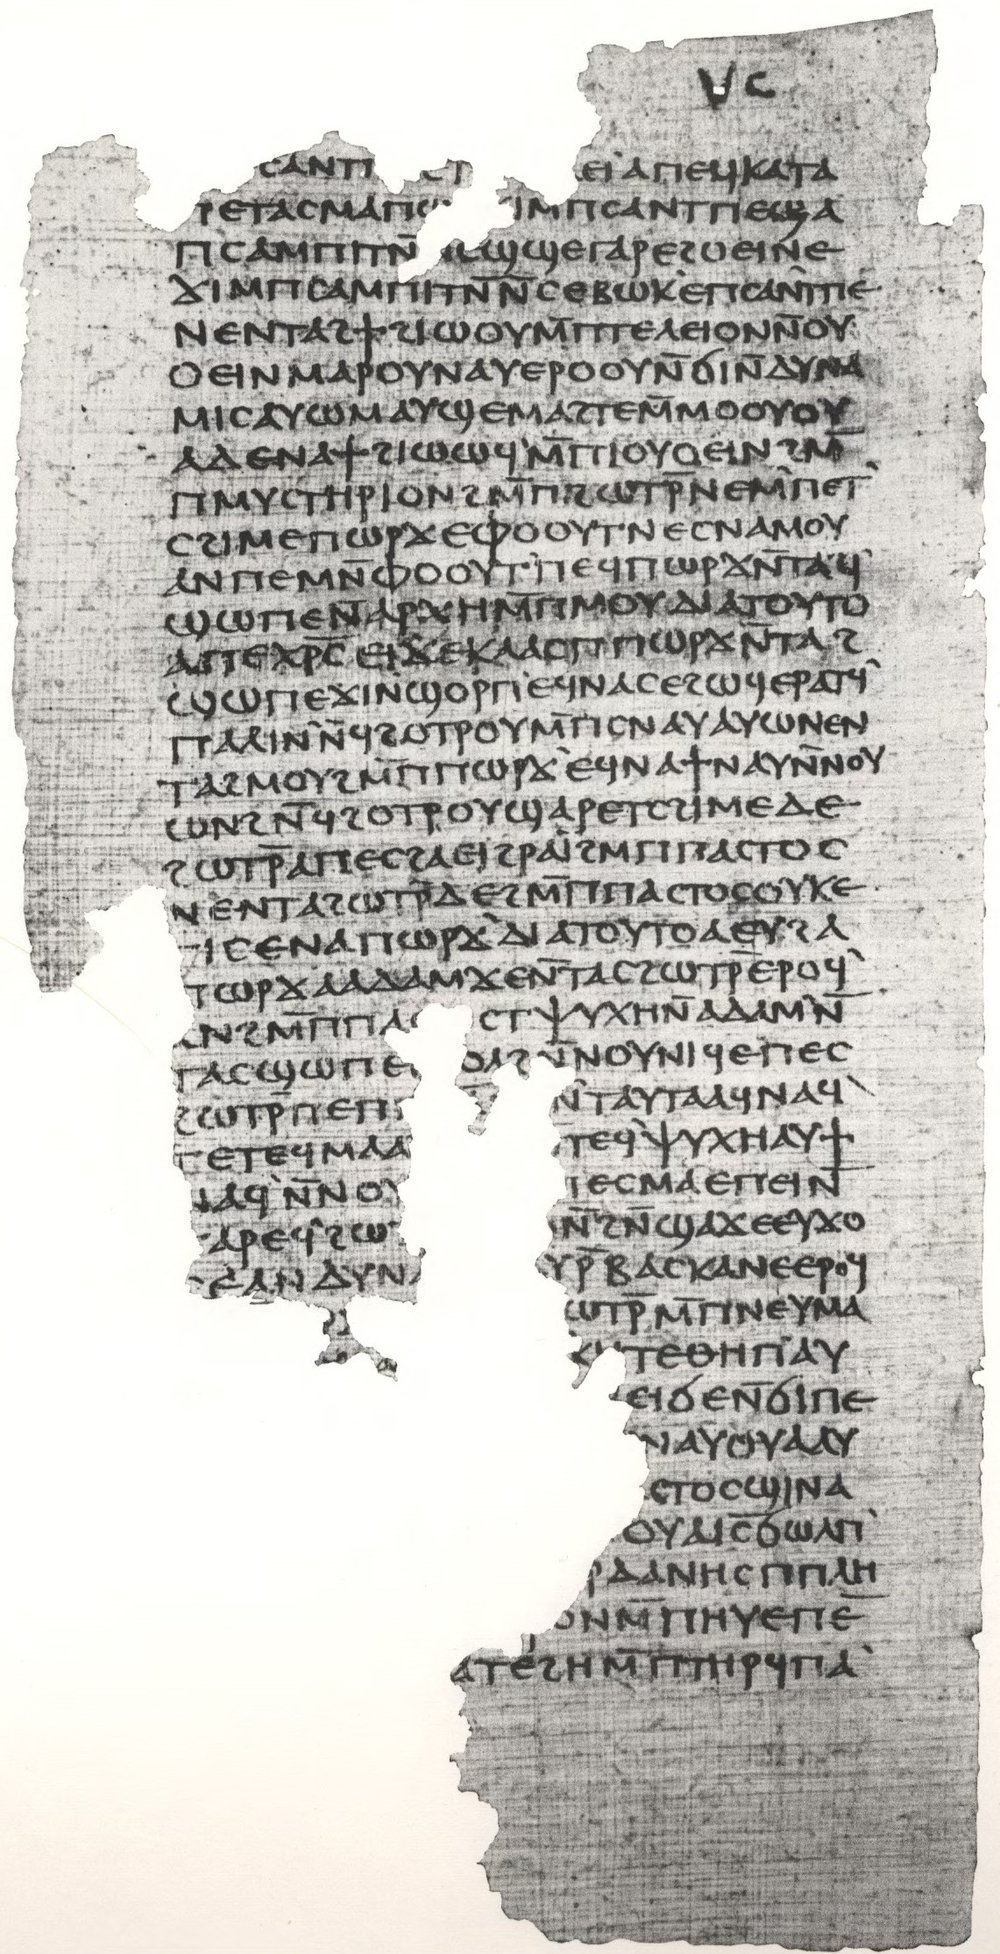 Gospel_of_Philip_facsimile_Page_70.jpg